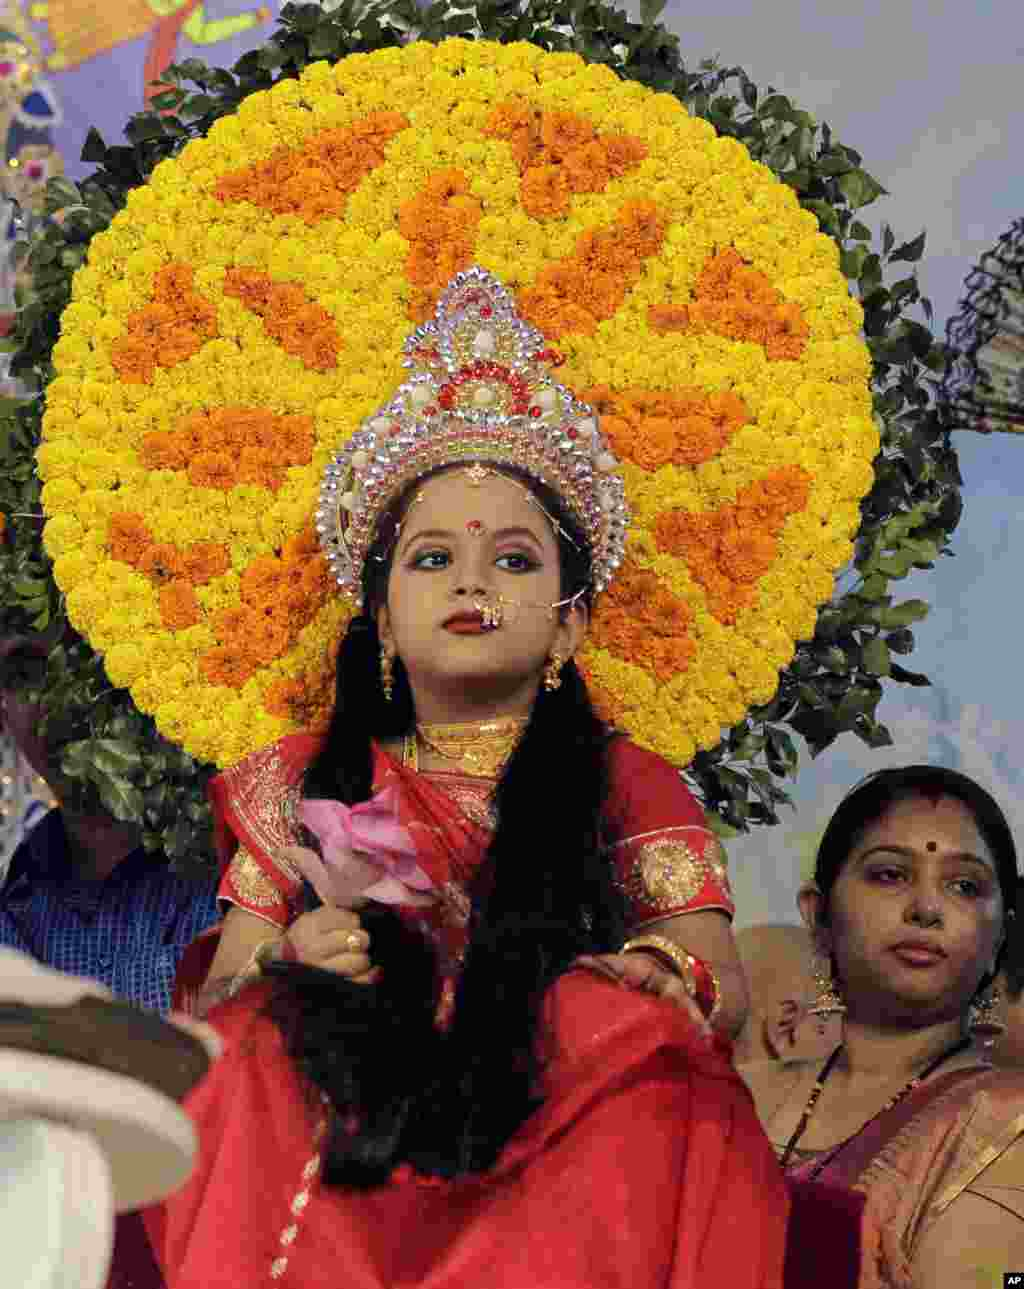 """A young girl sits for the """"Kumari Puja"""" ritual at the Ram Krishna mission temple in Dhaka, Bangladesh. Kumari Puja is part of Durga Puja festival where a young girl is worshipped symbolically as a goddess."""